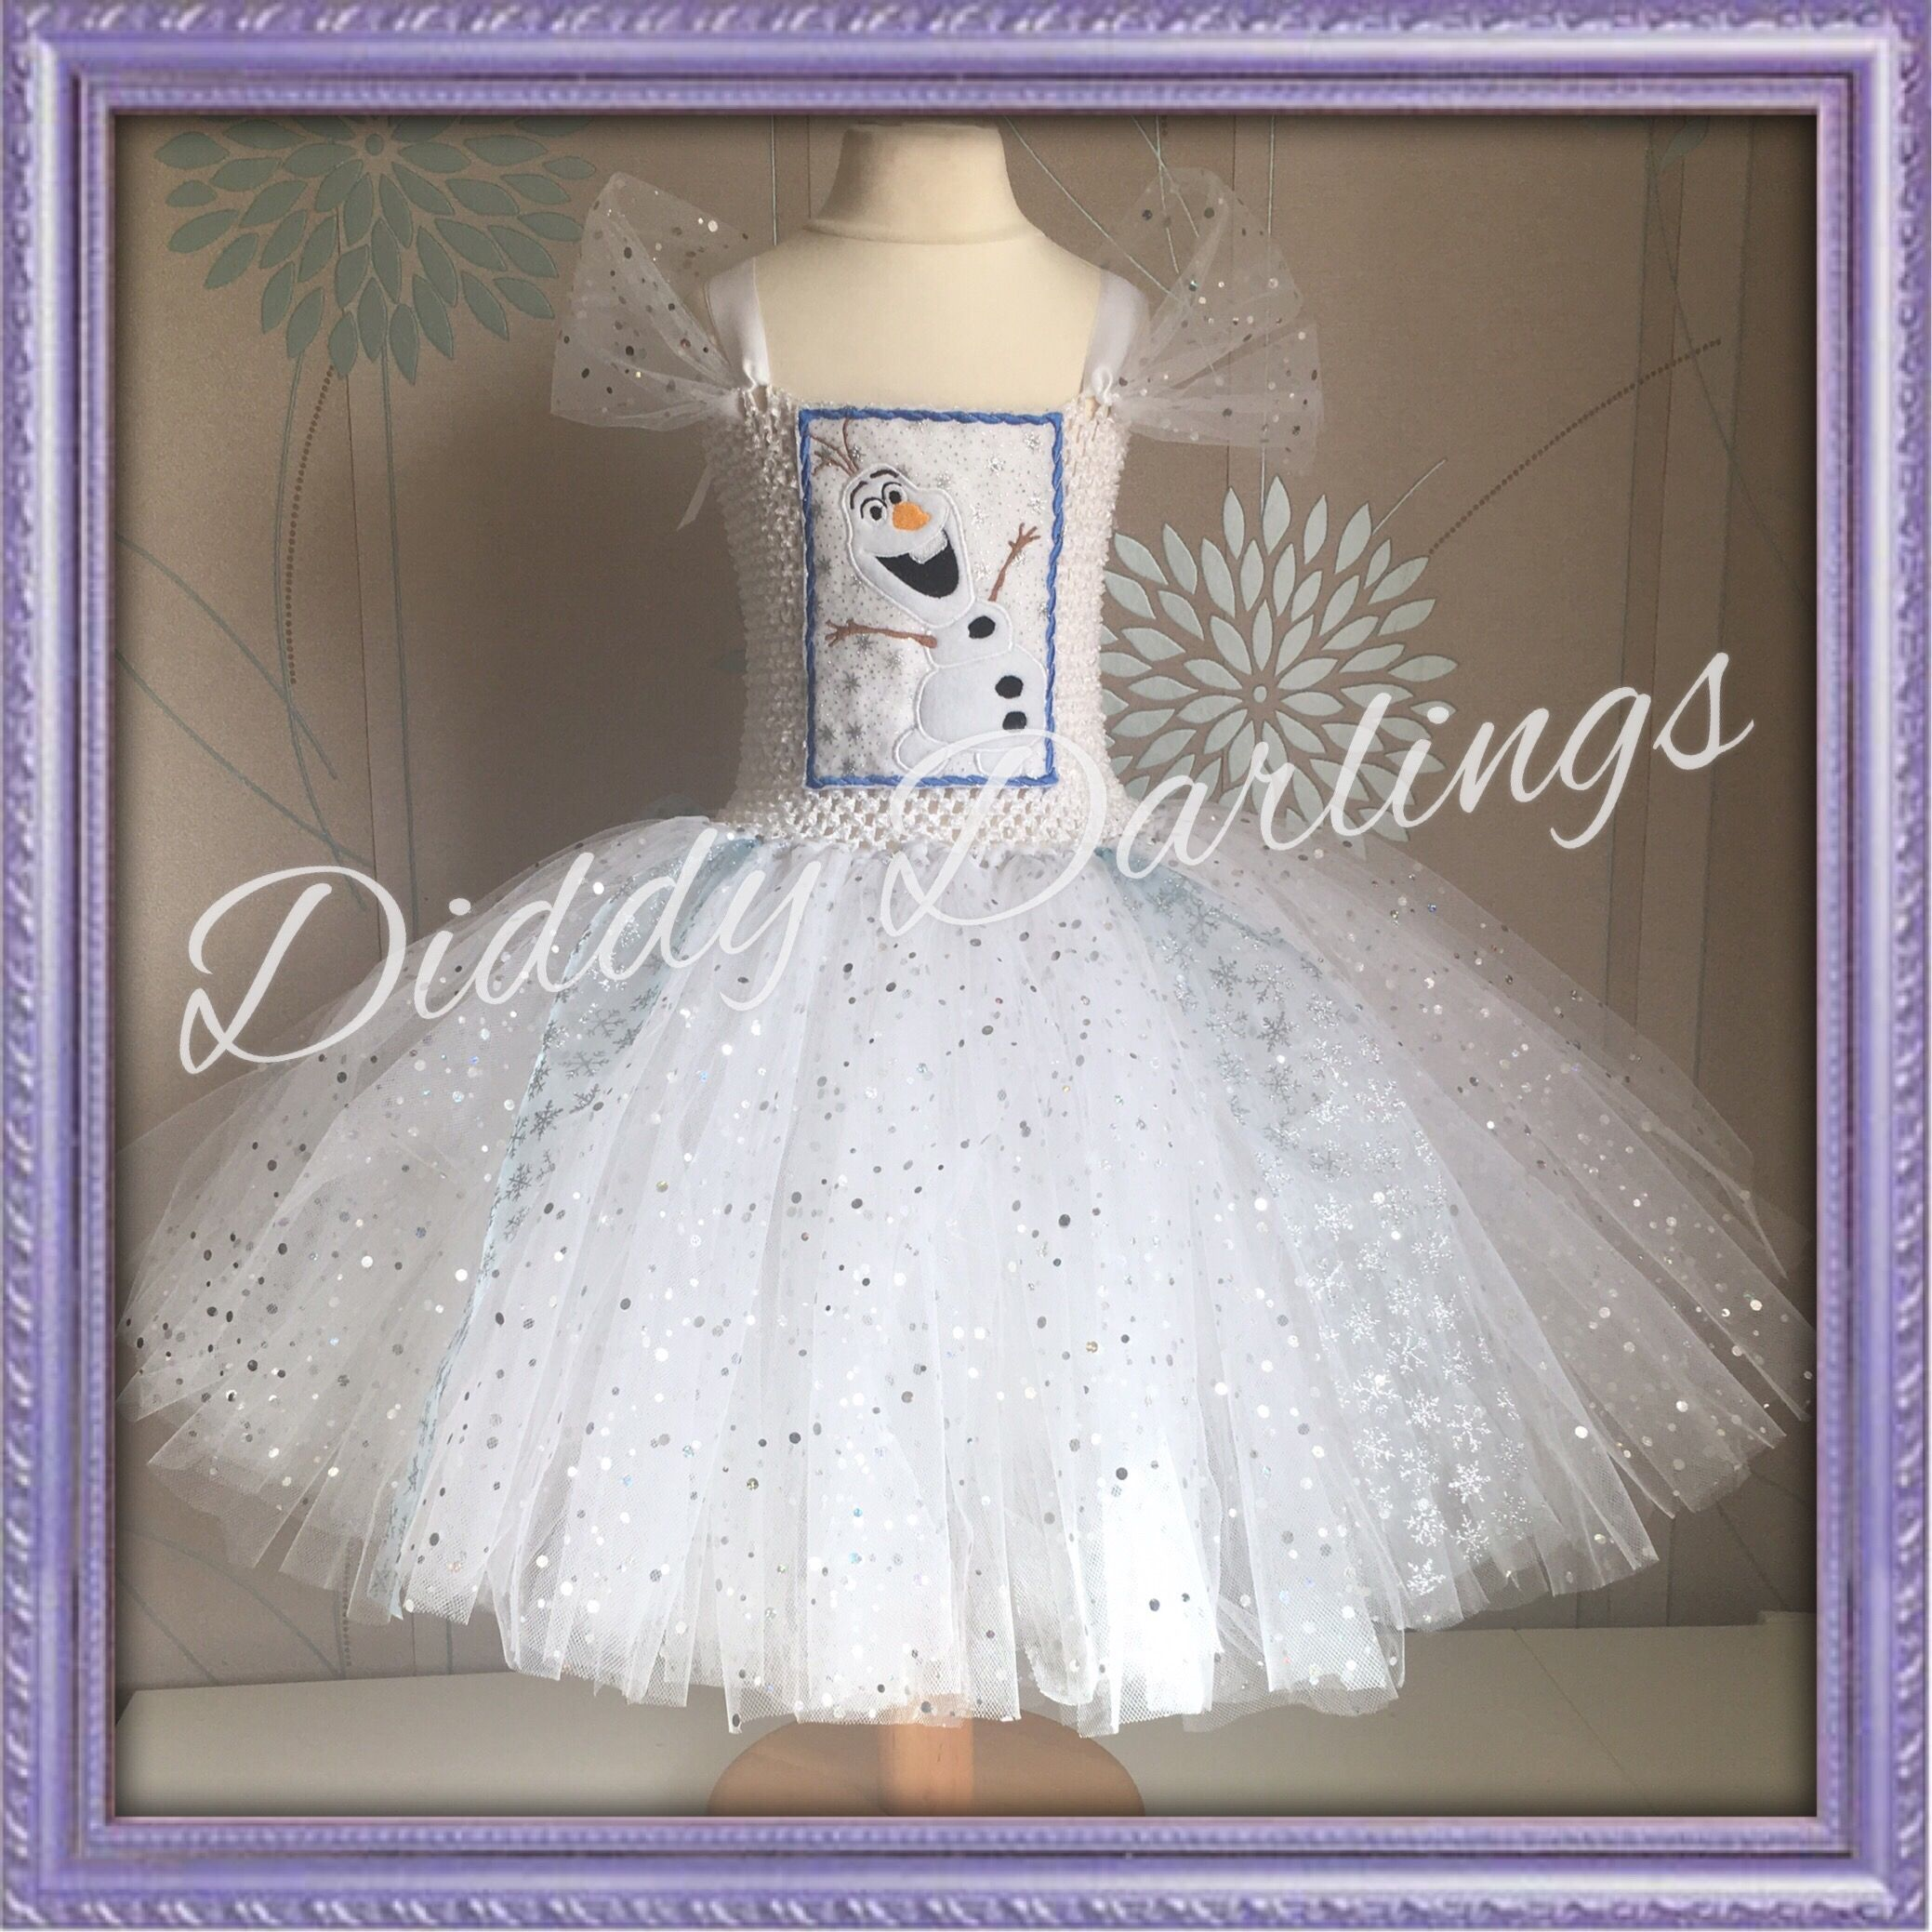 Olaf Tutu Dress. Frozen Tutu Dress. Beautiful & lovingly handmade.  All characters and colours available Price varies on size, starting from £25.  Please message us for more info.  Find us on Facebook www.facebook.com/DiddyDarlings1 or our website www.diddydarlings.co.uk